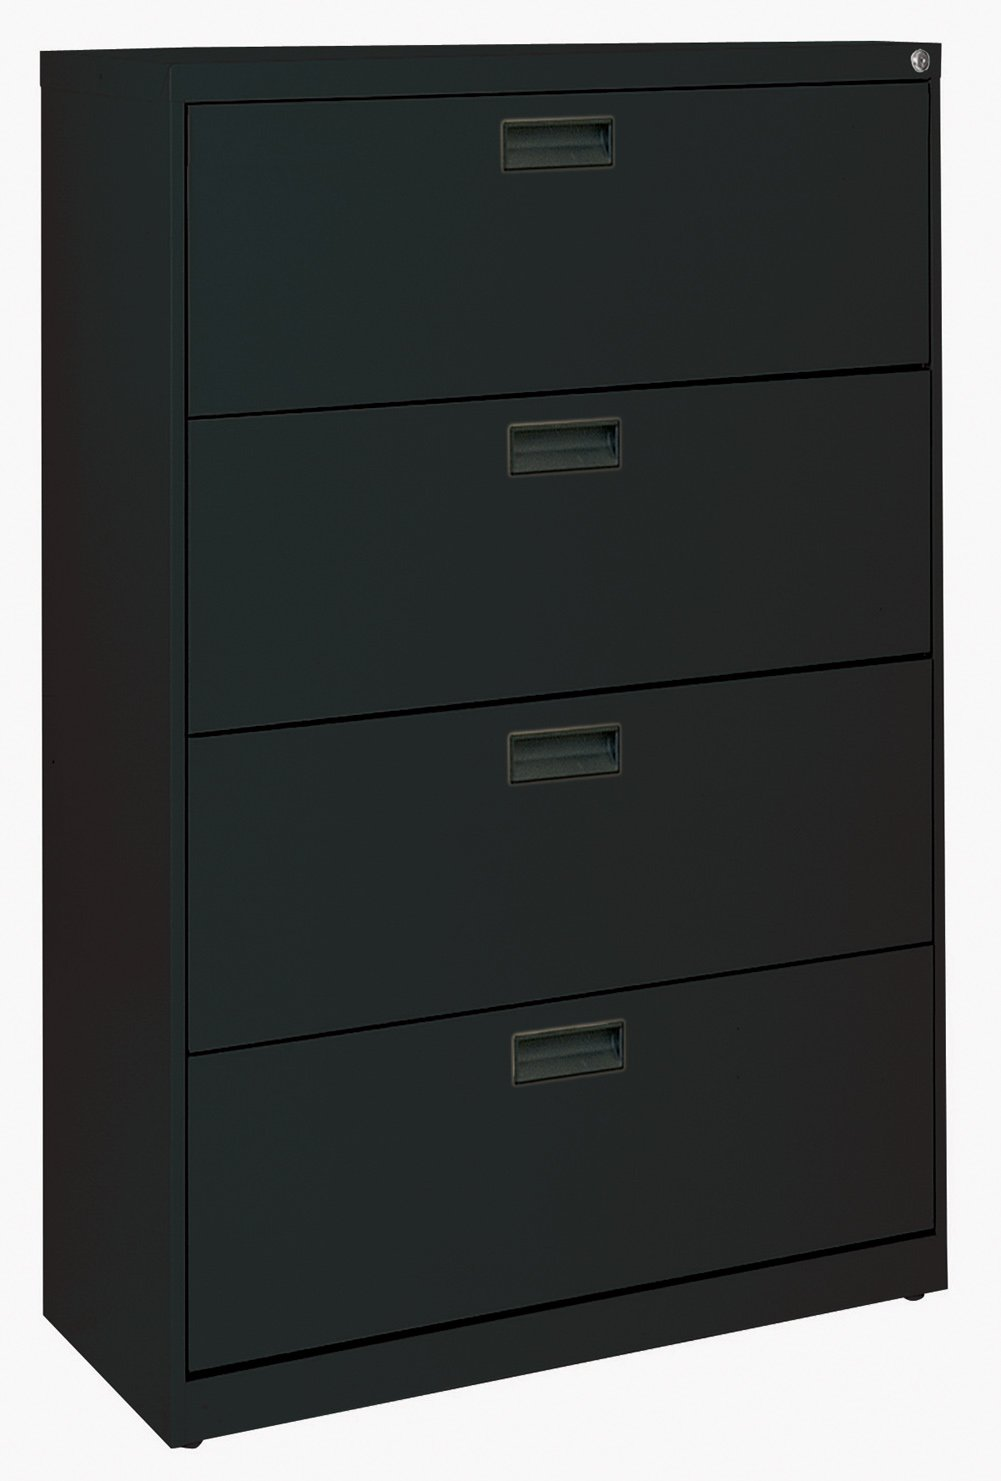 Sandusky 400 Series Steel Lateral File Cabinet with Plastic Handle, 30